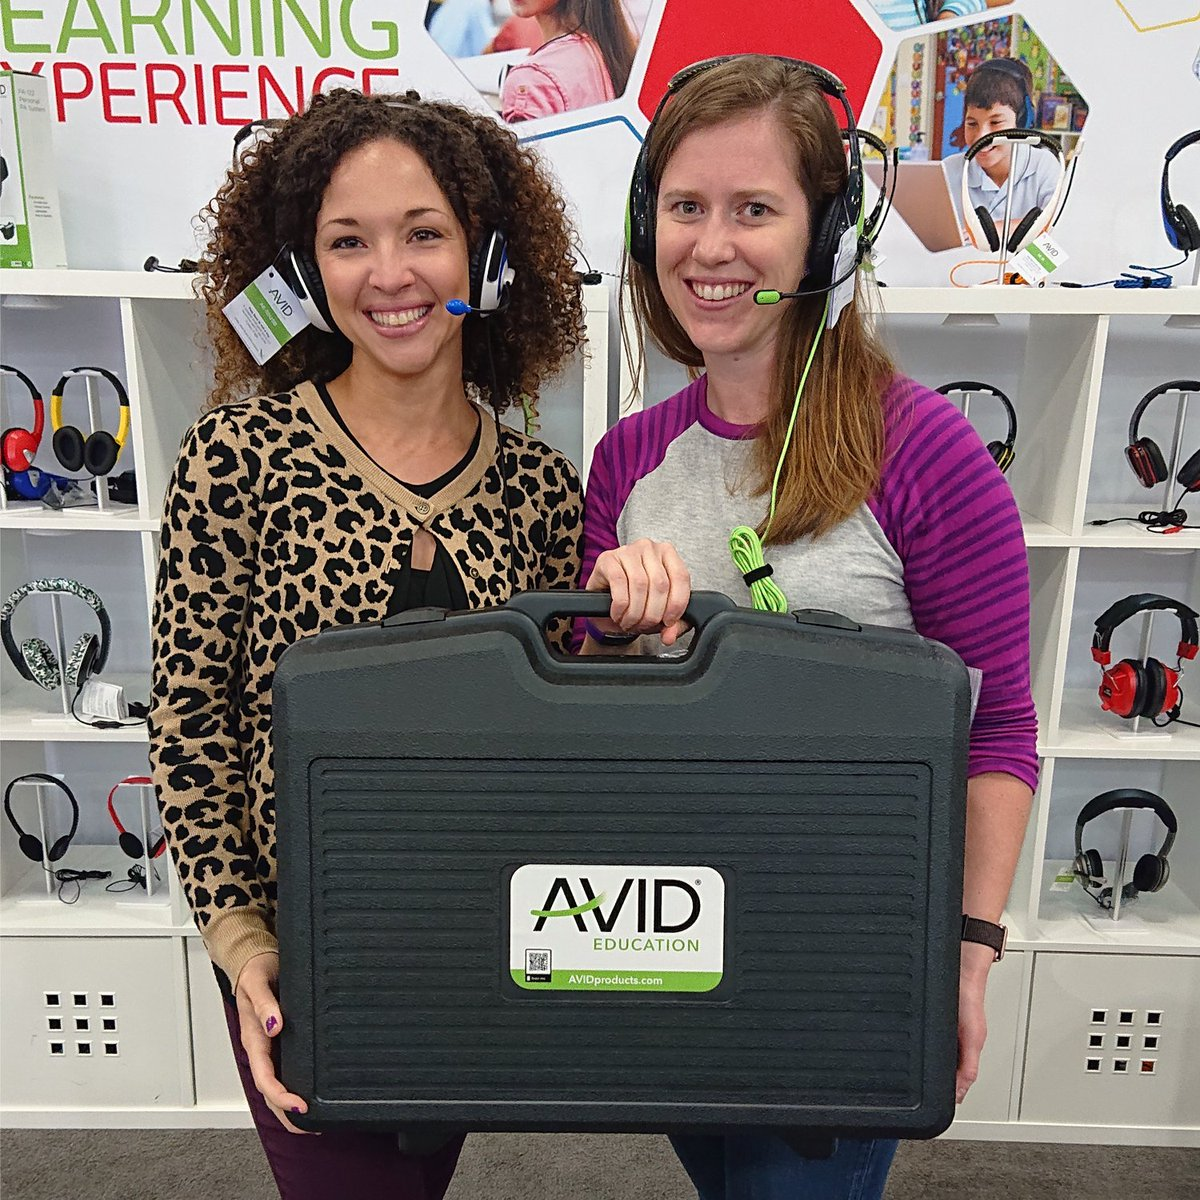 Congrats to yesterday's Class Pack winner, Carrie! Enjoy! #tcea #edtech #avideducation #avidheadphones